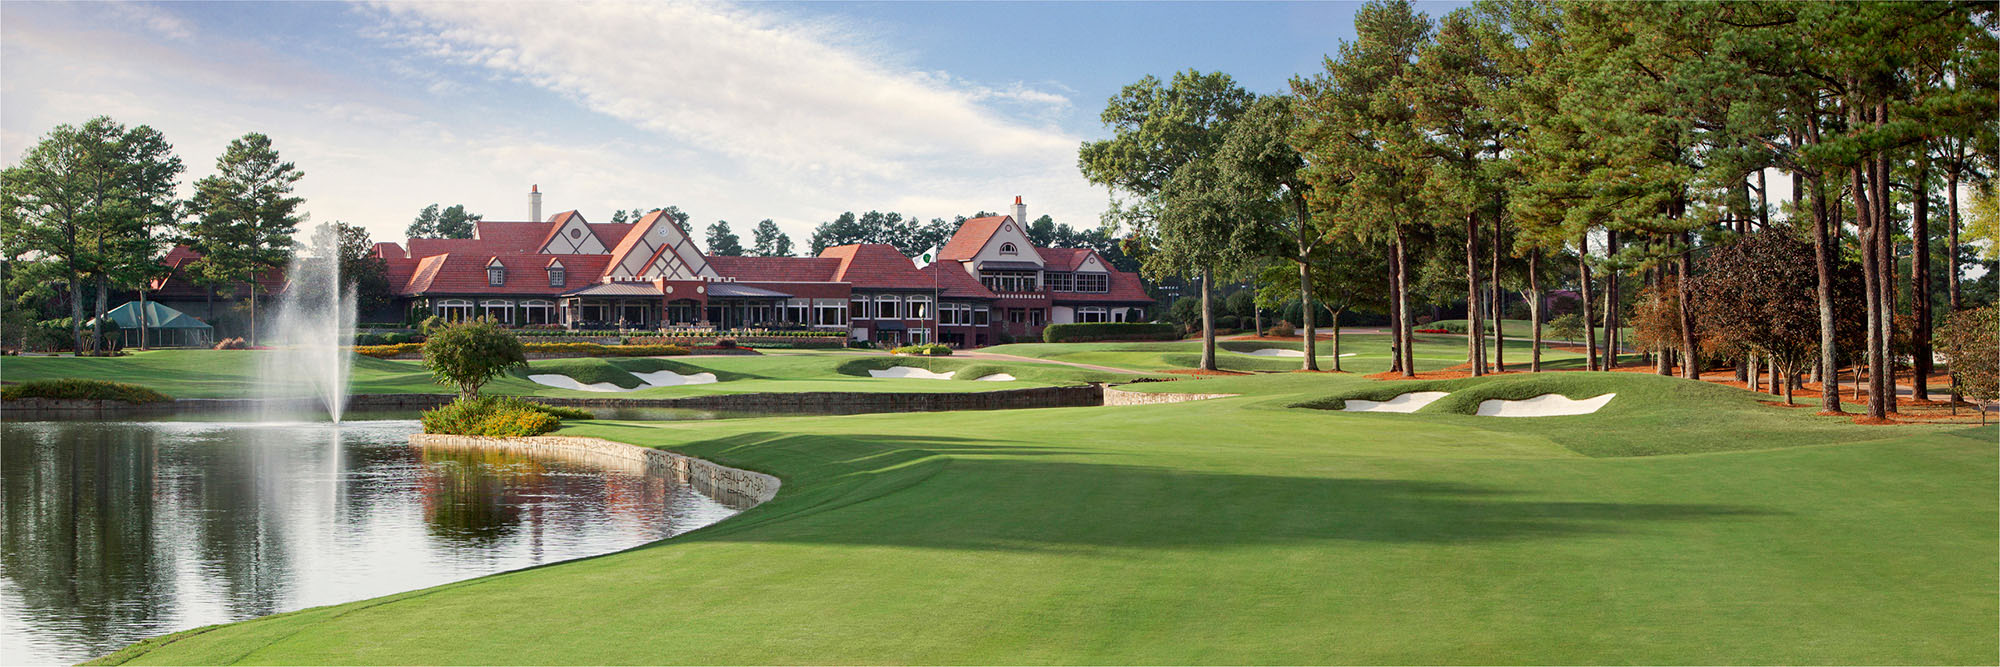 Golf Course Image - Atlanta Athletic Club No. 18